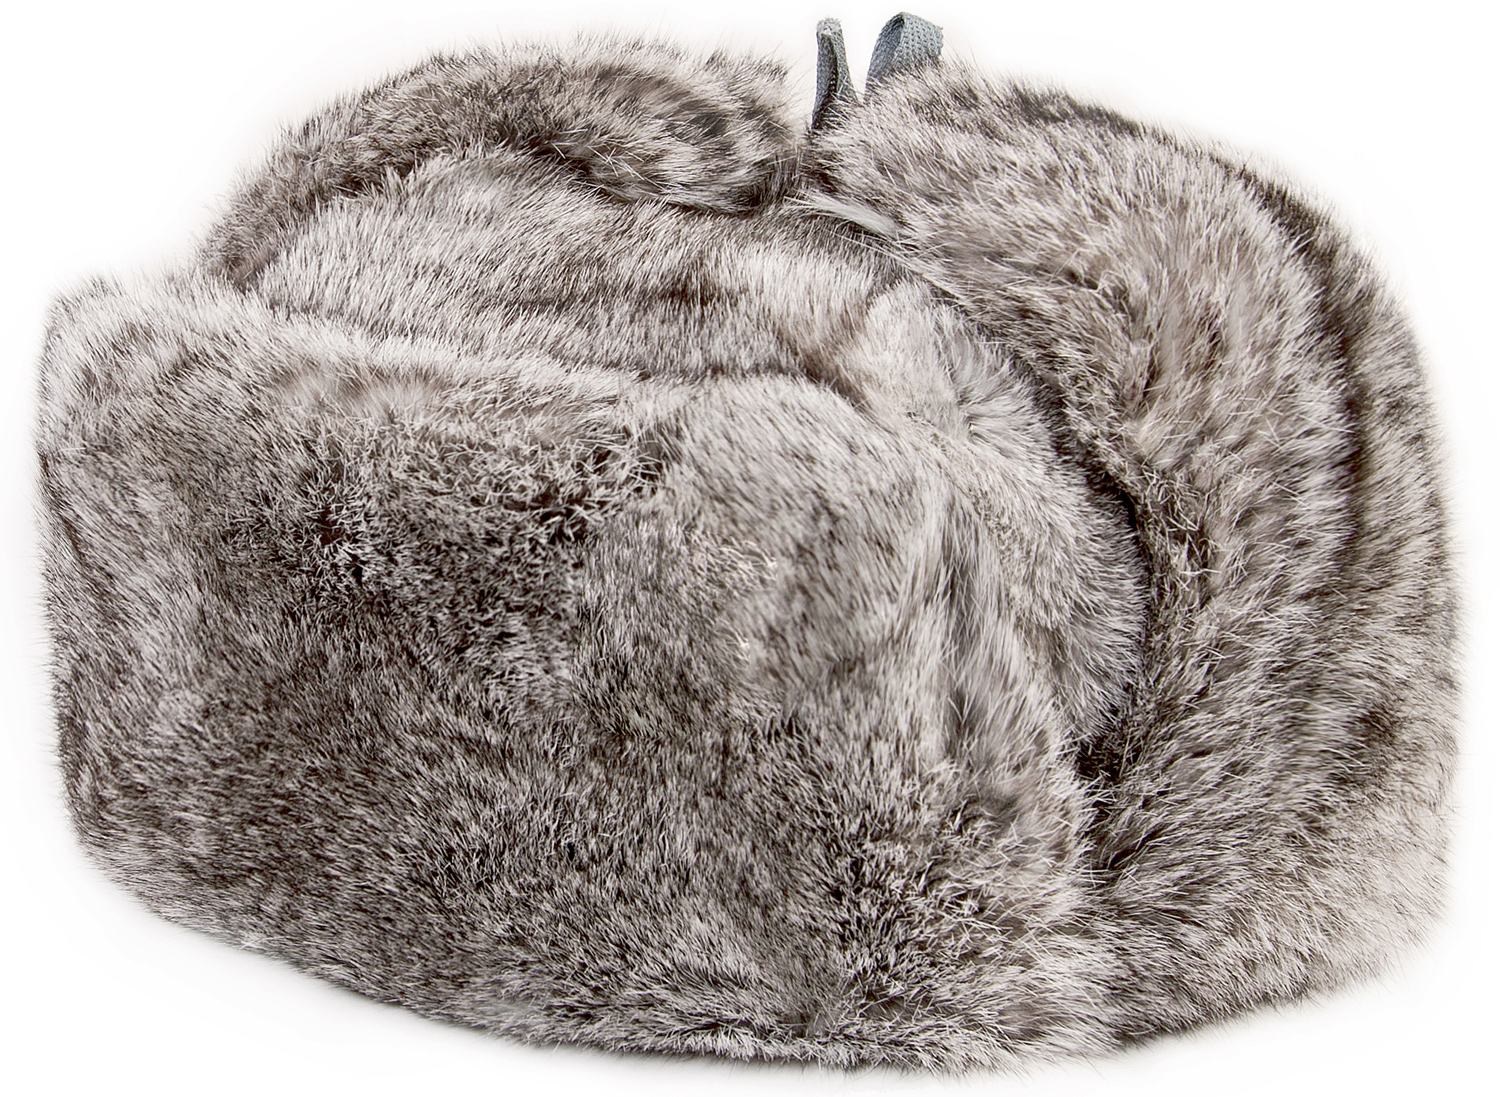 f3a5c553c Gray rabbit fur ushanka winter hat.